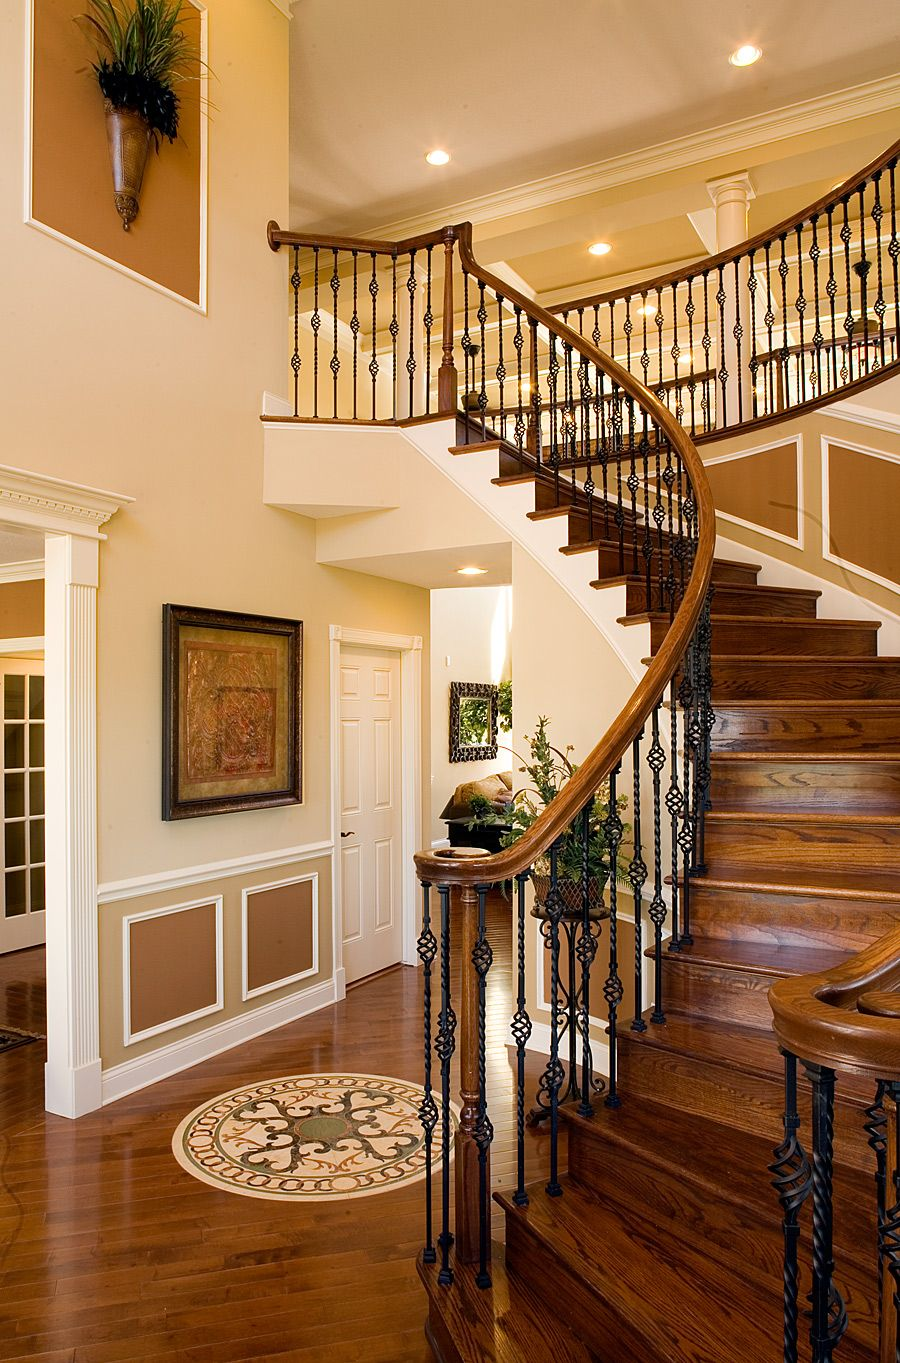 Beautiful curved staircase by angelique iron spindle staircase iron staircase railing